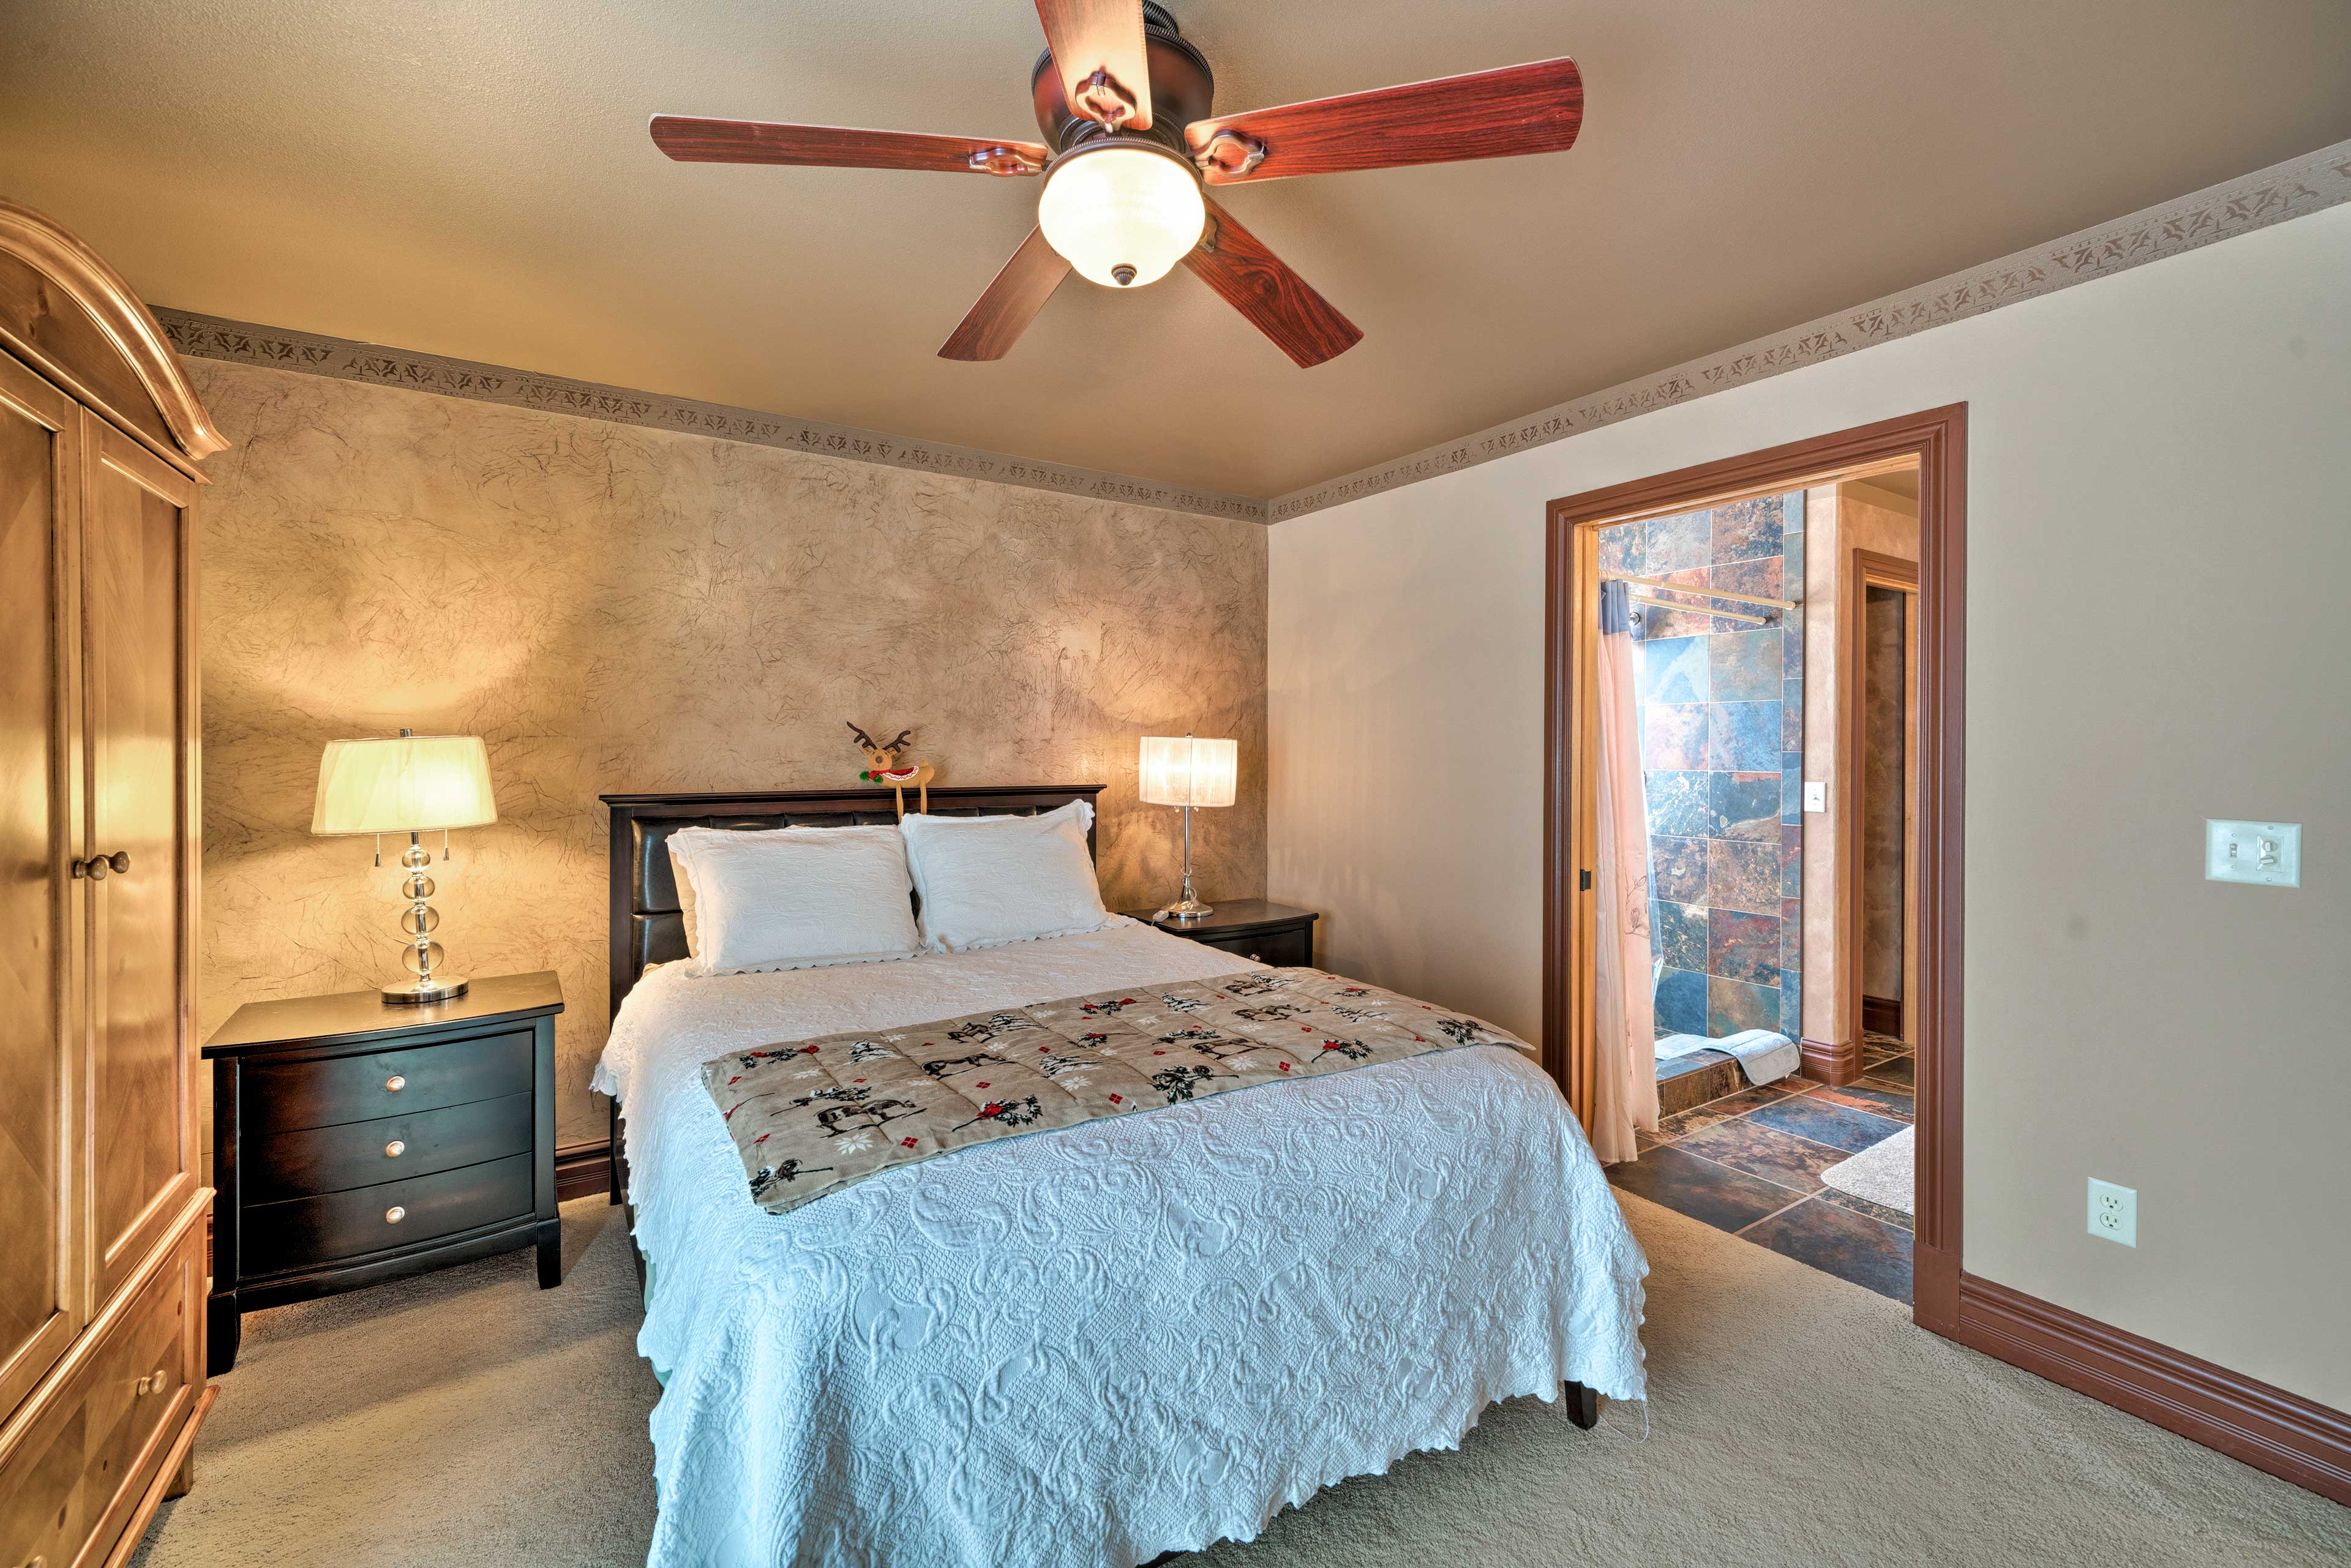 Both bedrooms offer a queen-sized bed.